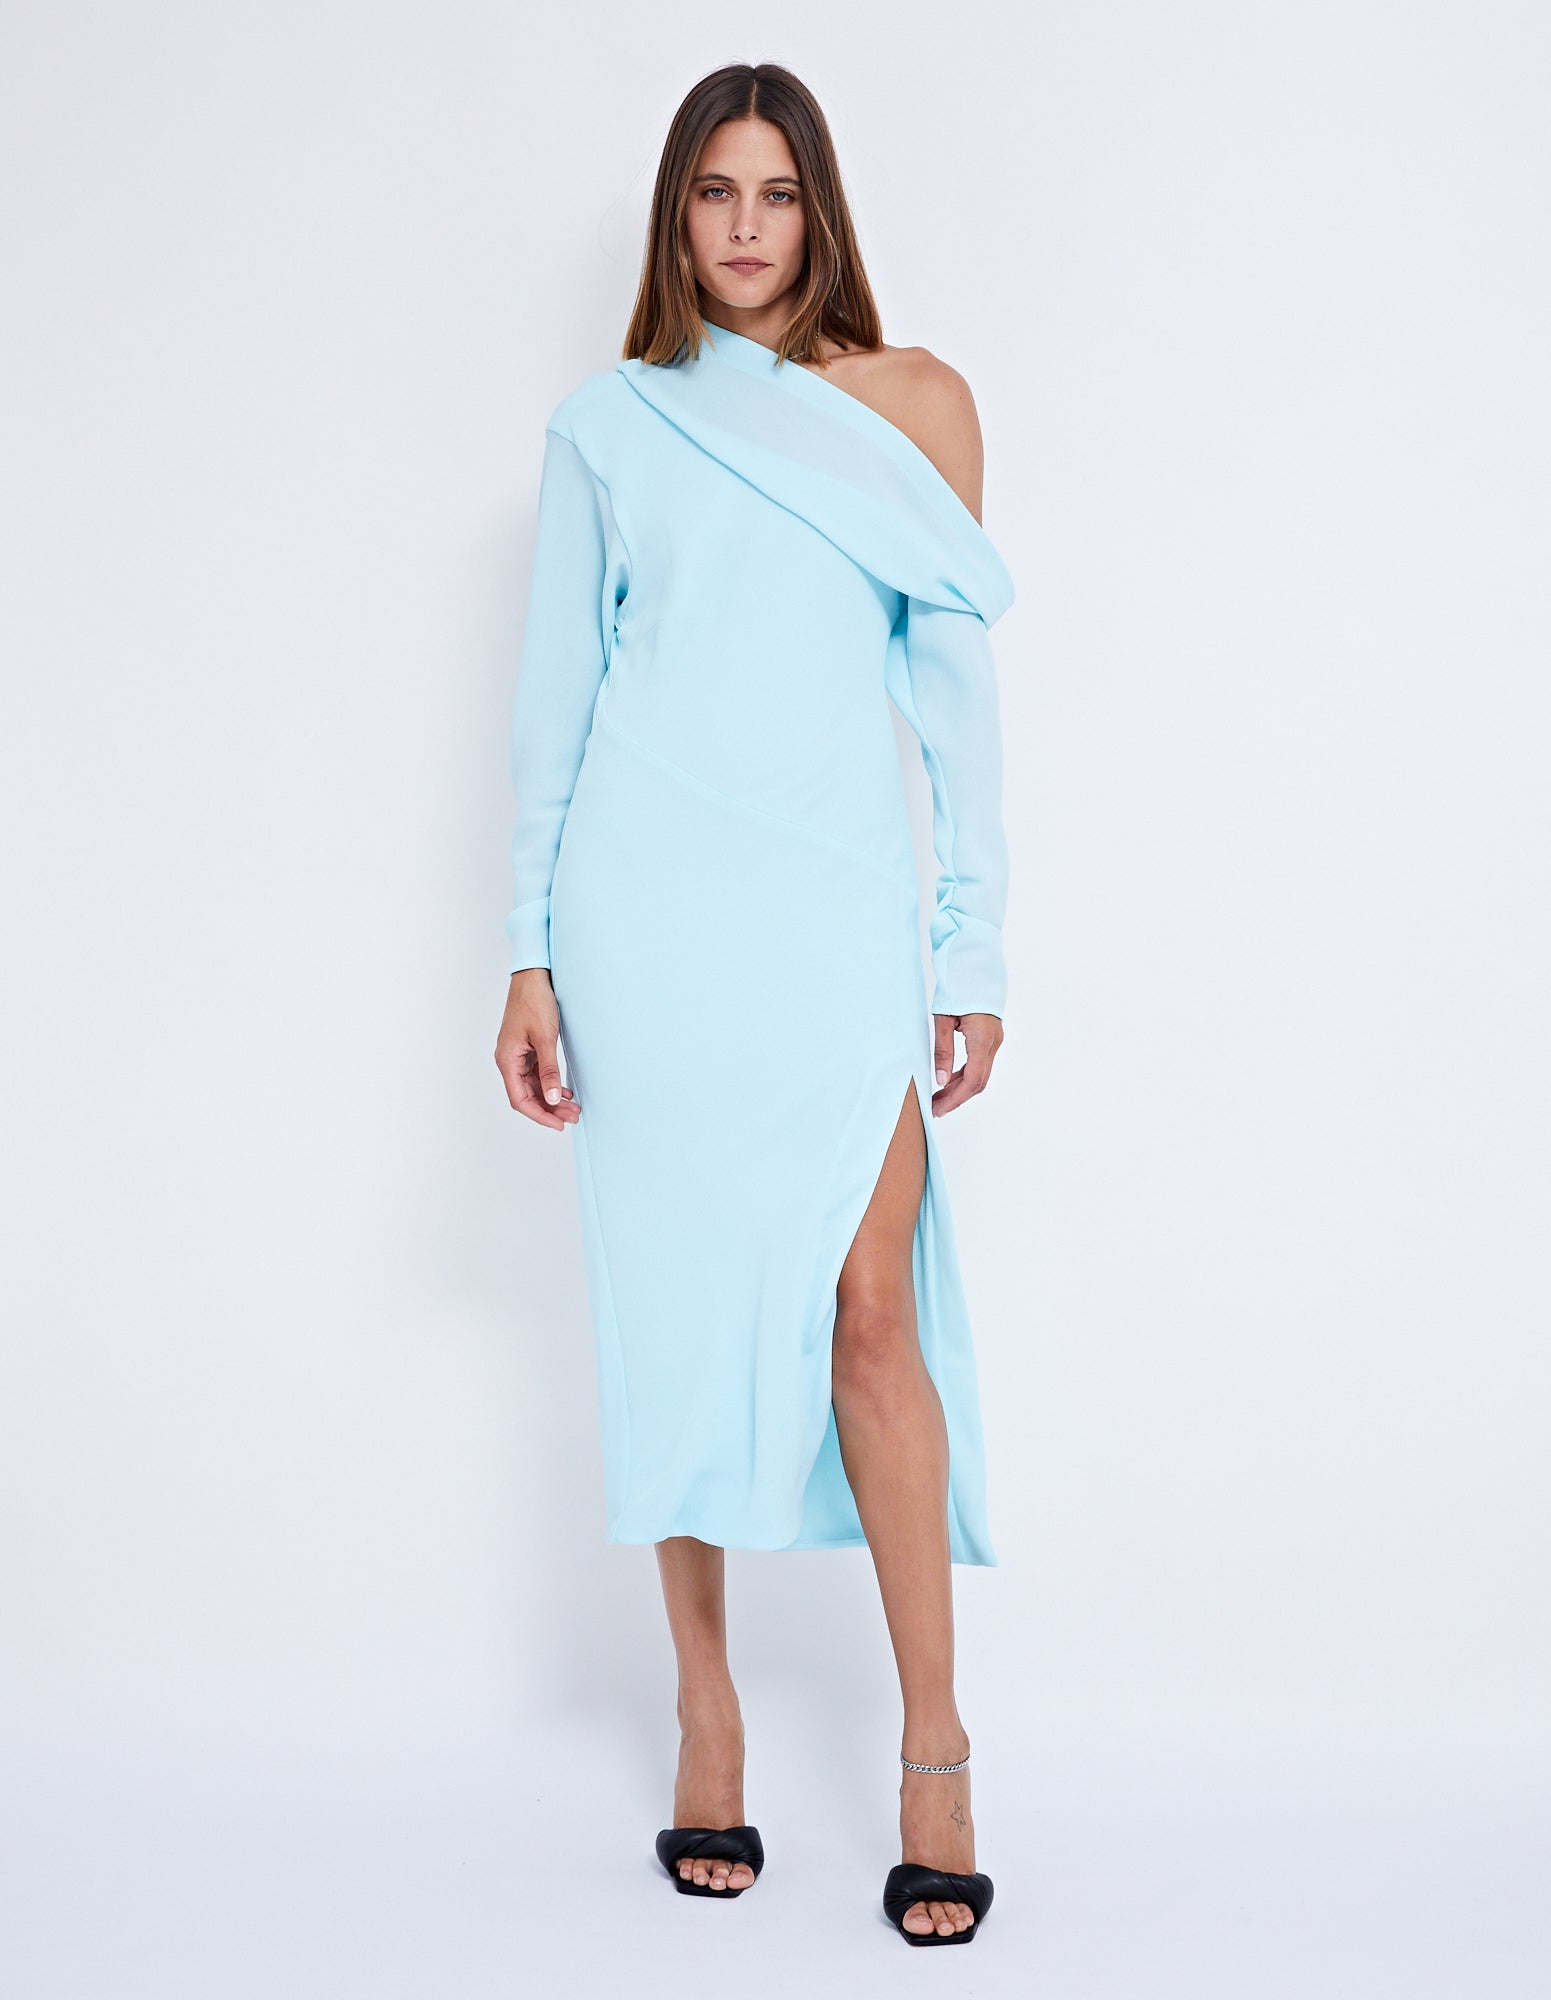 ALESSIO DRESS | BLUE